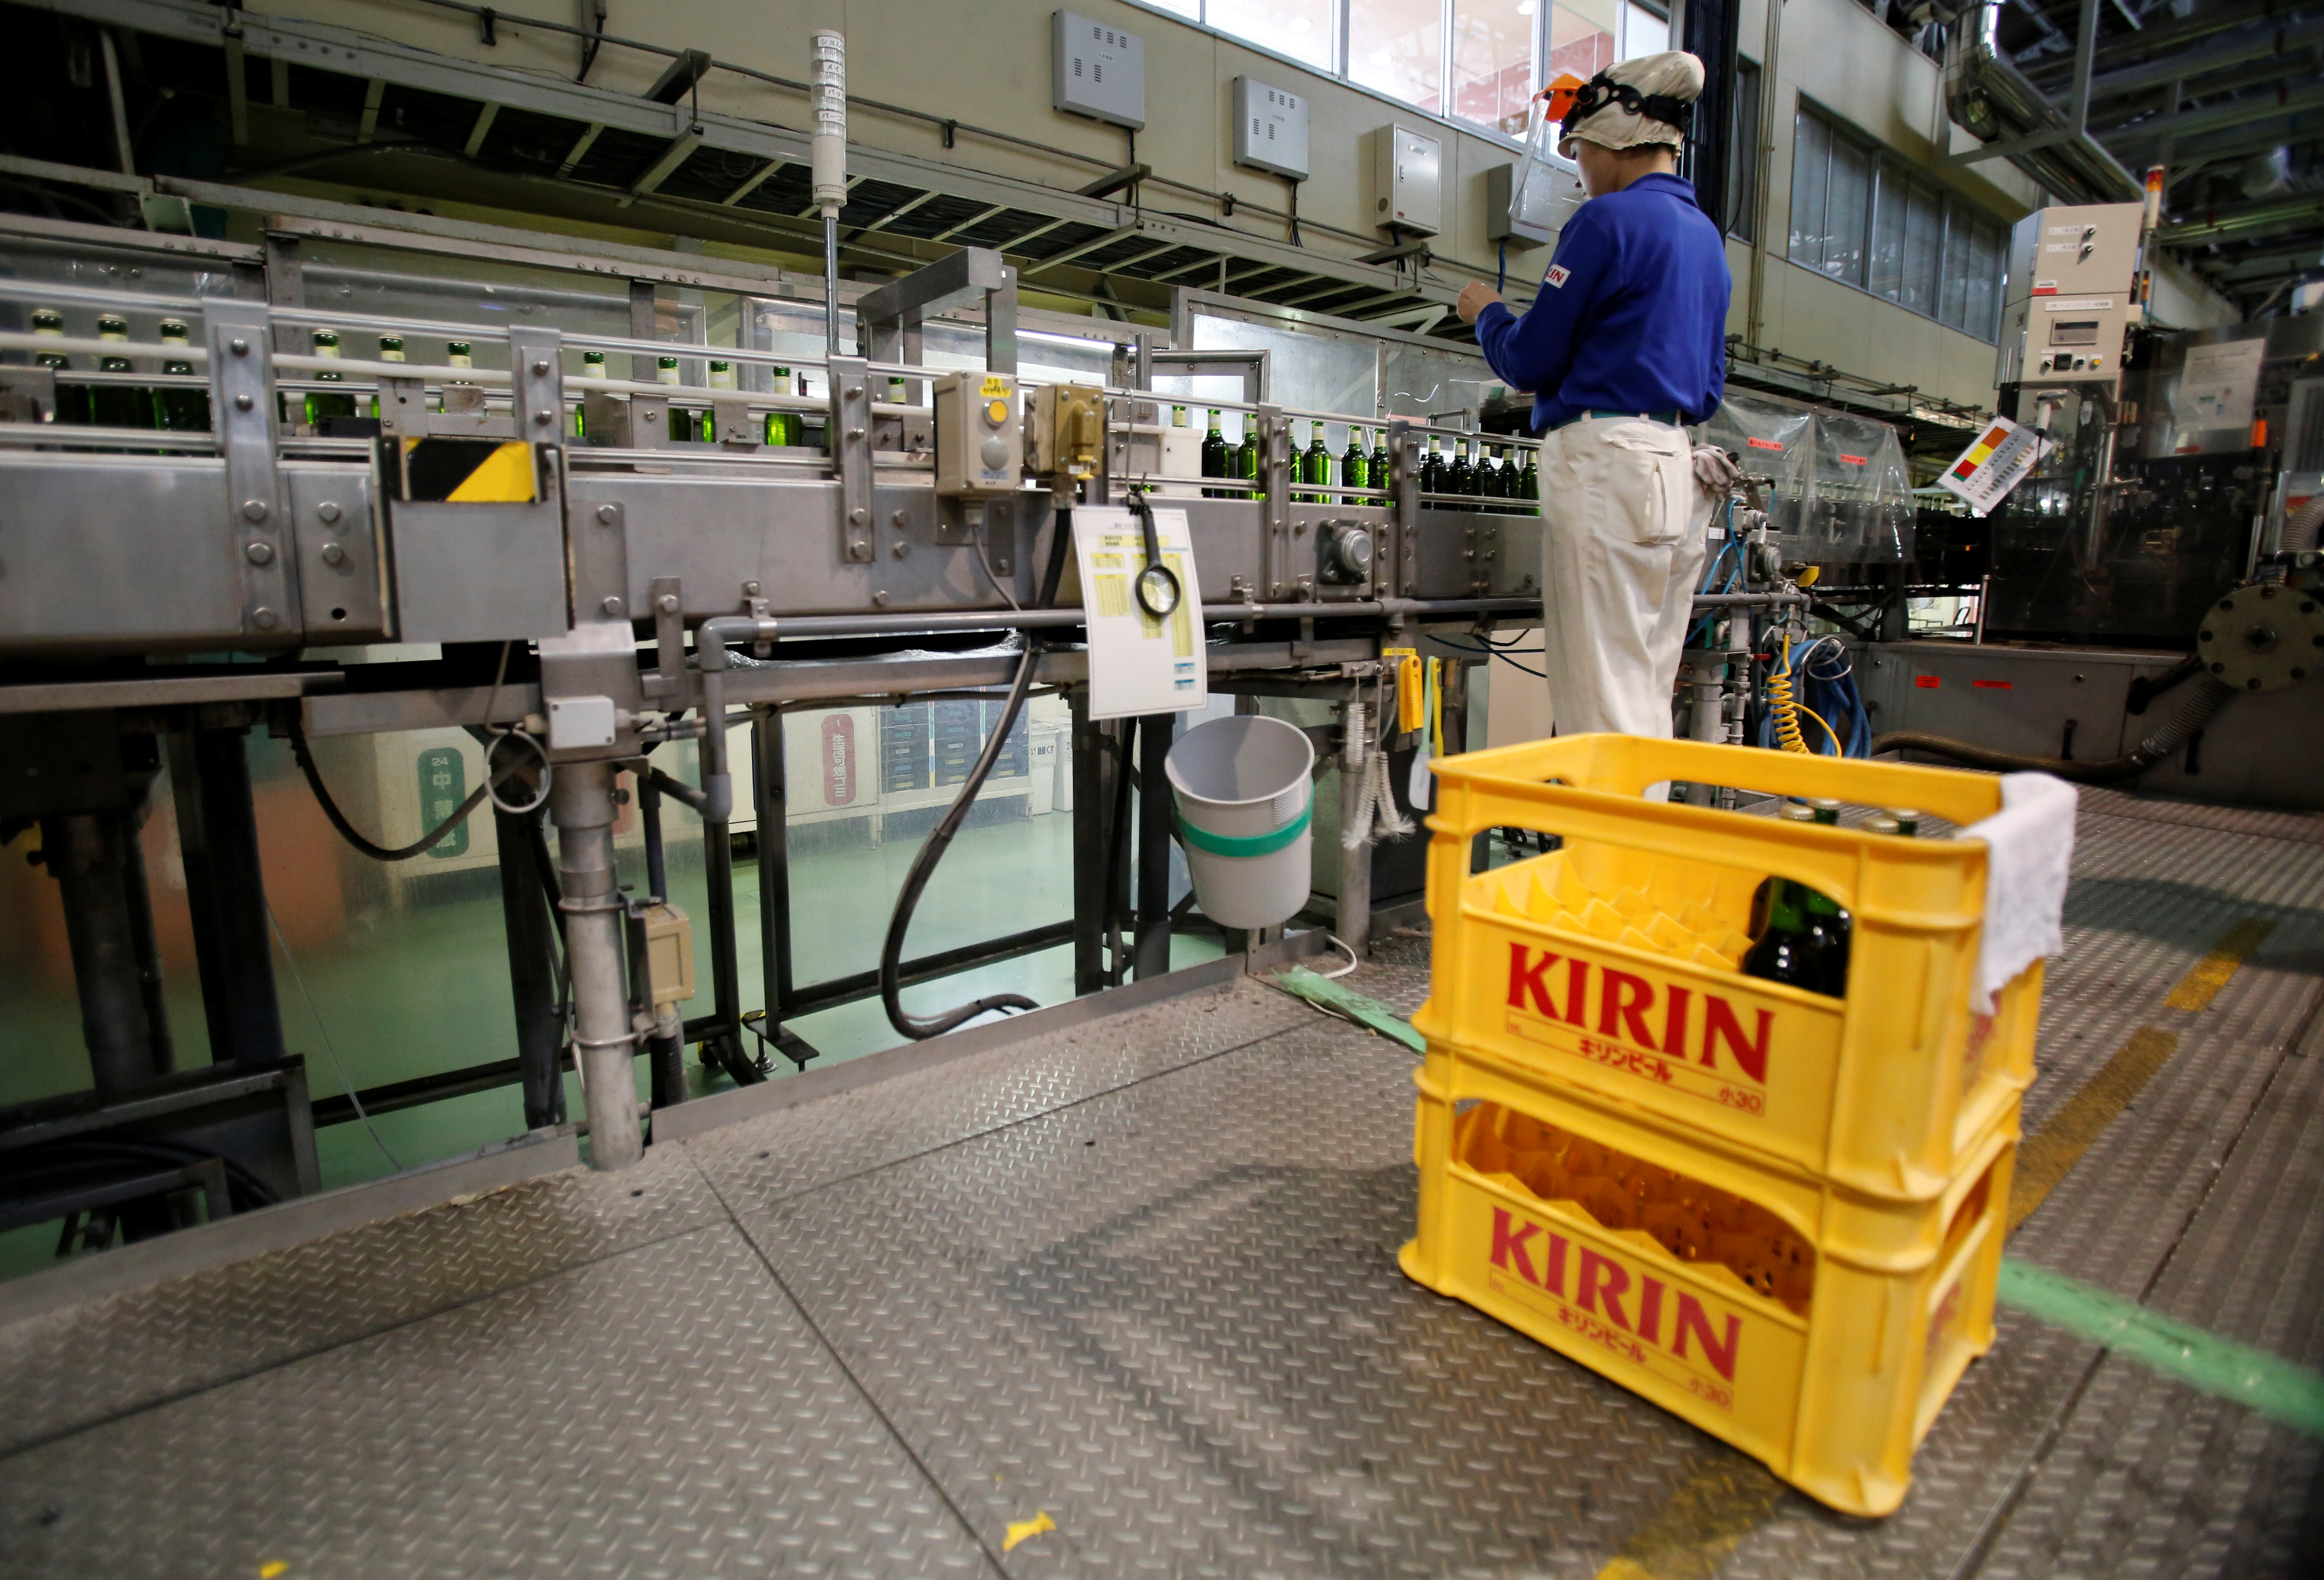 An employee works at a beer production line at Japanese brewer Kirin Holdings' factory in Toride, Ibaraki Prefecture, Japan July 14, 2017. REUTERS/Kim Kyung-Noon